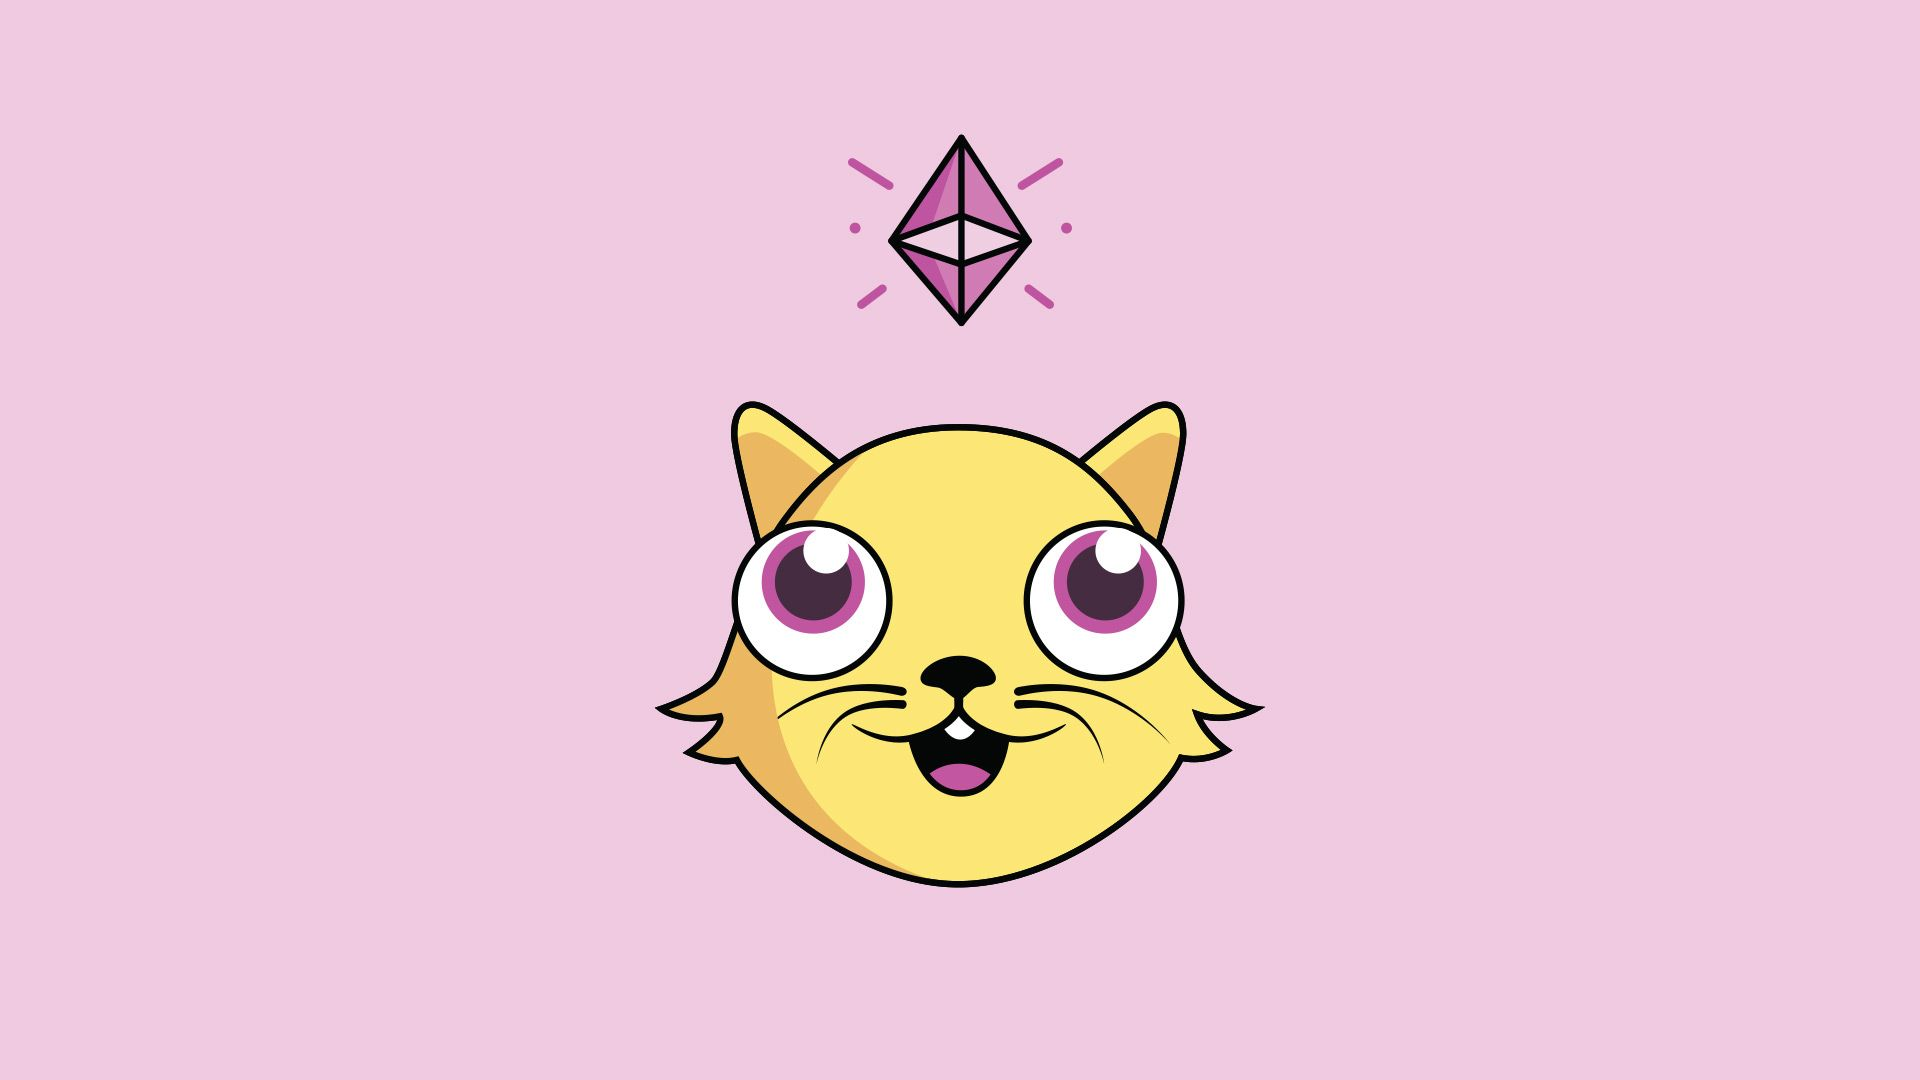 KittieFIGHT Offers Crypto Enthusiasts A Chance To Win Some KTY Before Growing Them Up to 6000% Through Yield Farming